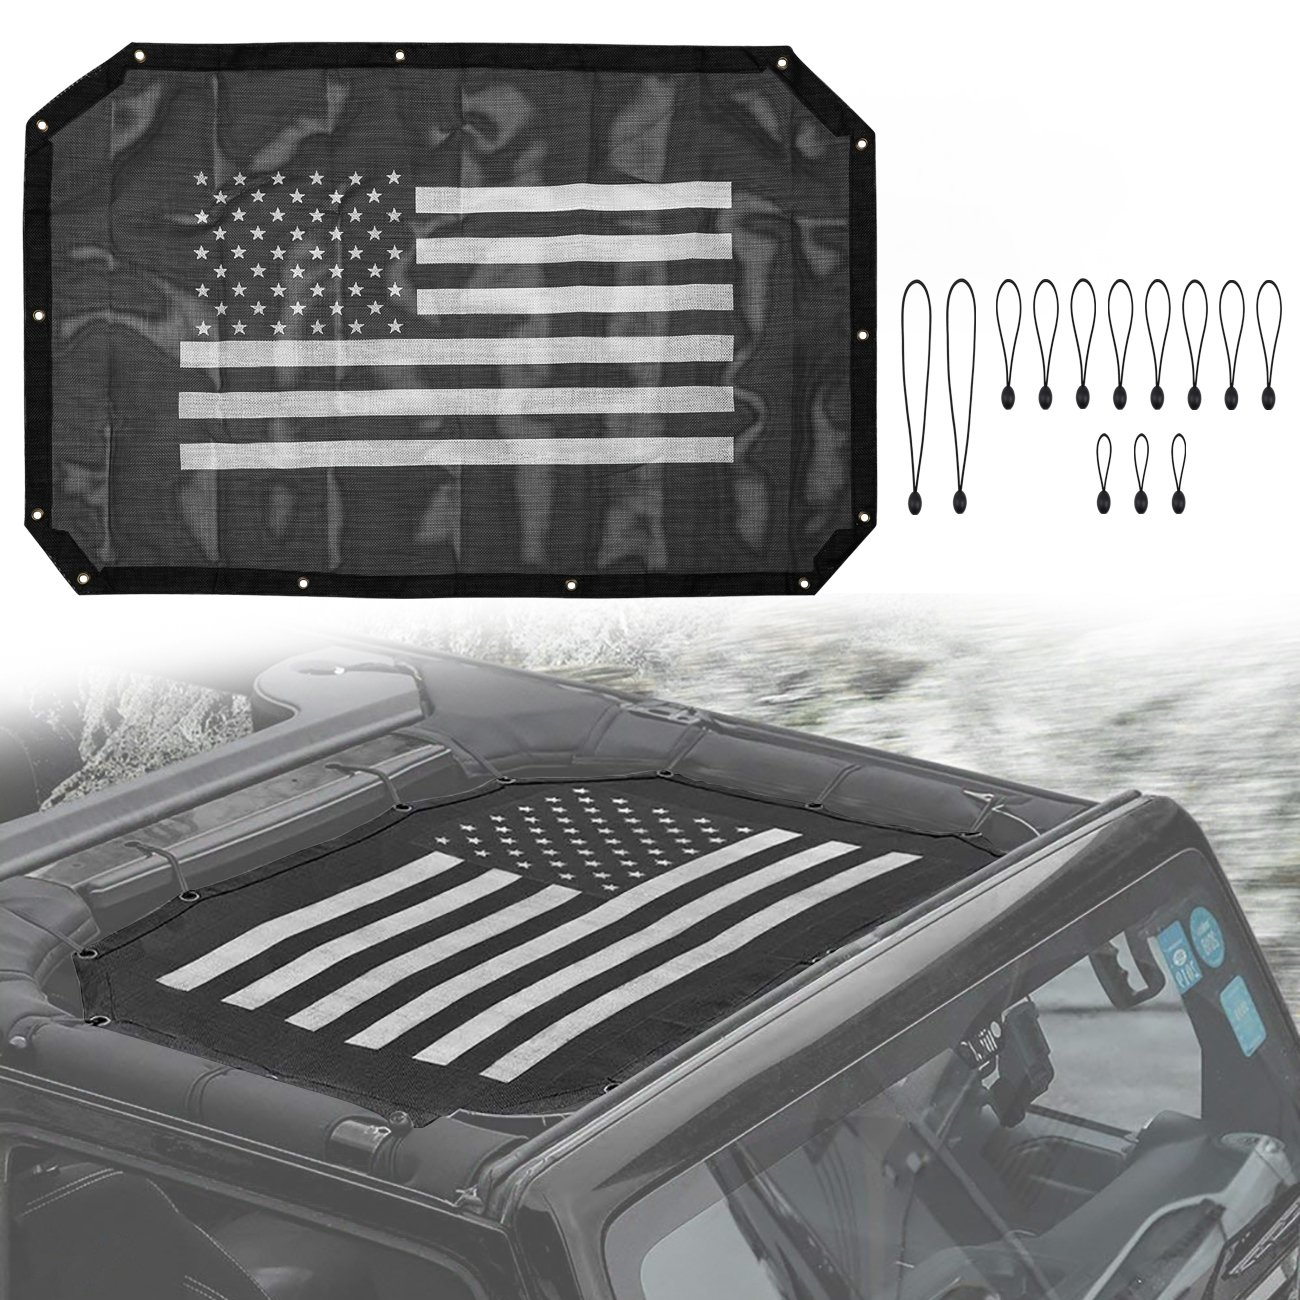 Yoursme US Flag Mesh Sun Shade Top Cover Provides UV Protection for Jeep Wrangler Front Passengers 2 Door or 4 Door JK JKU 2007-2018